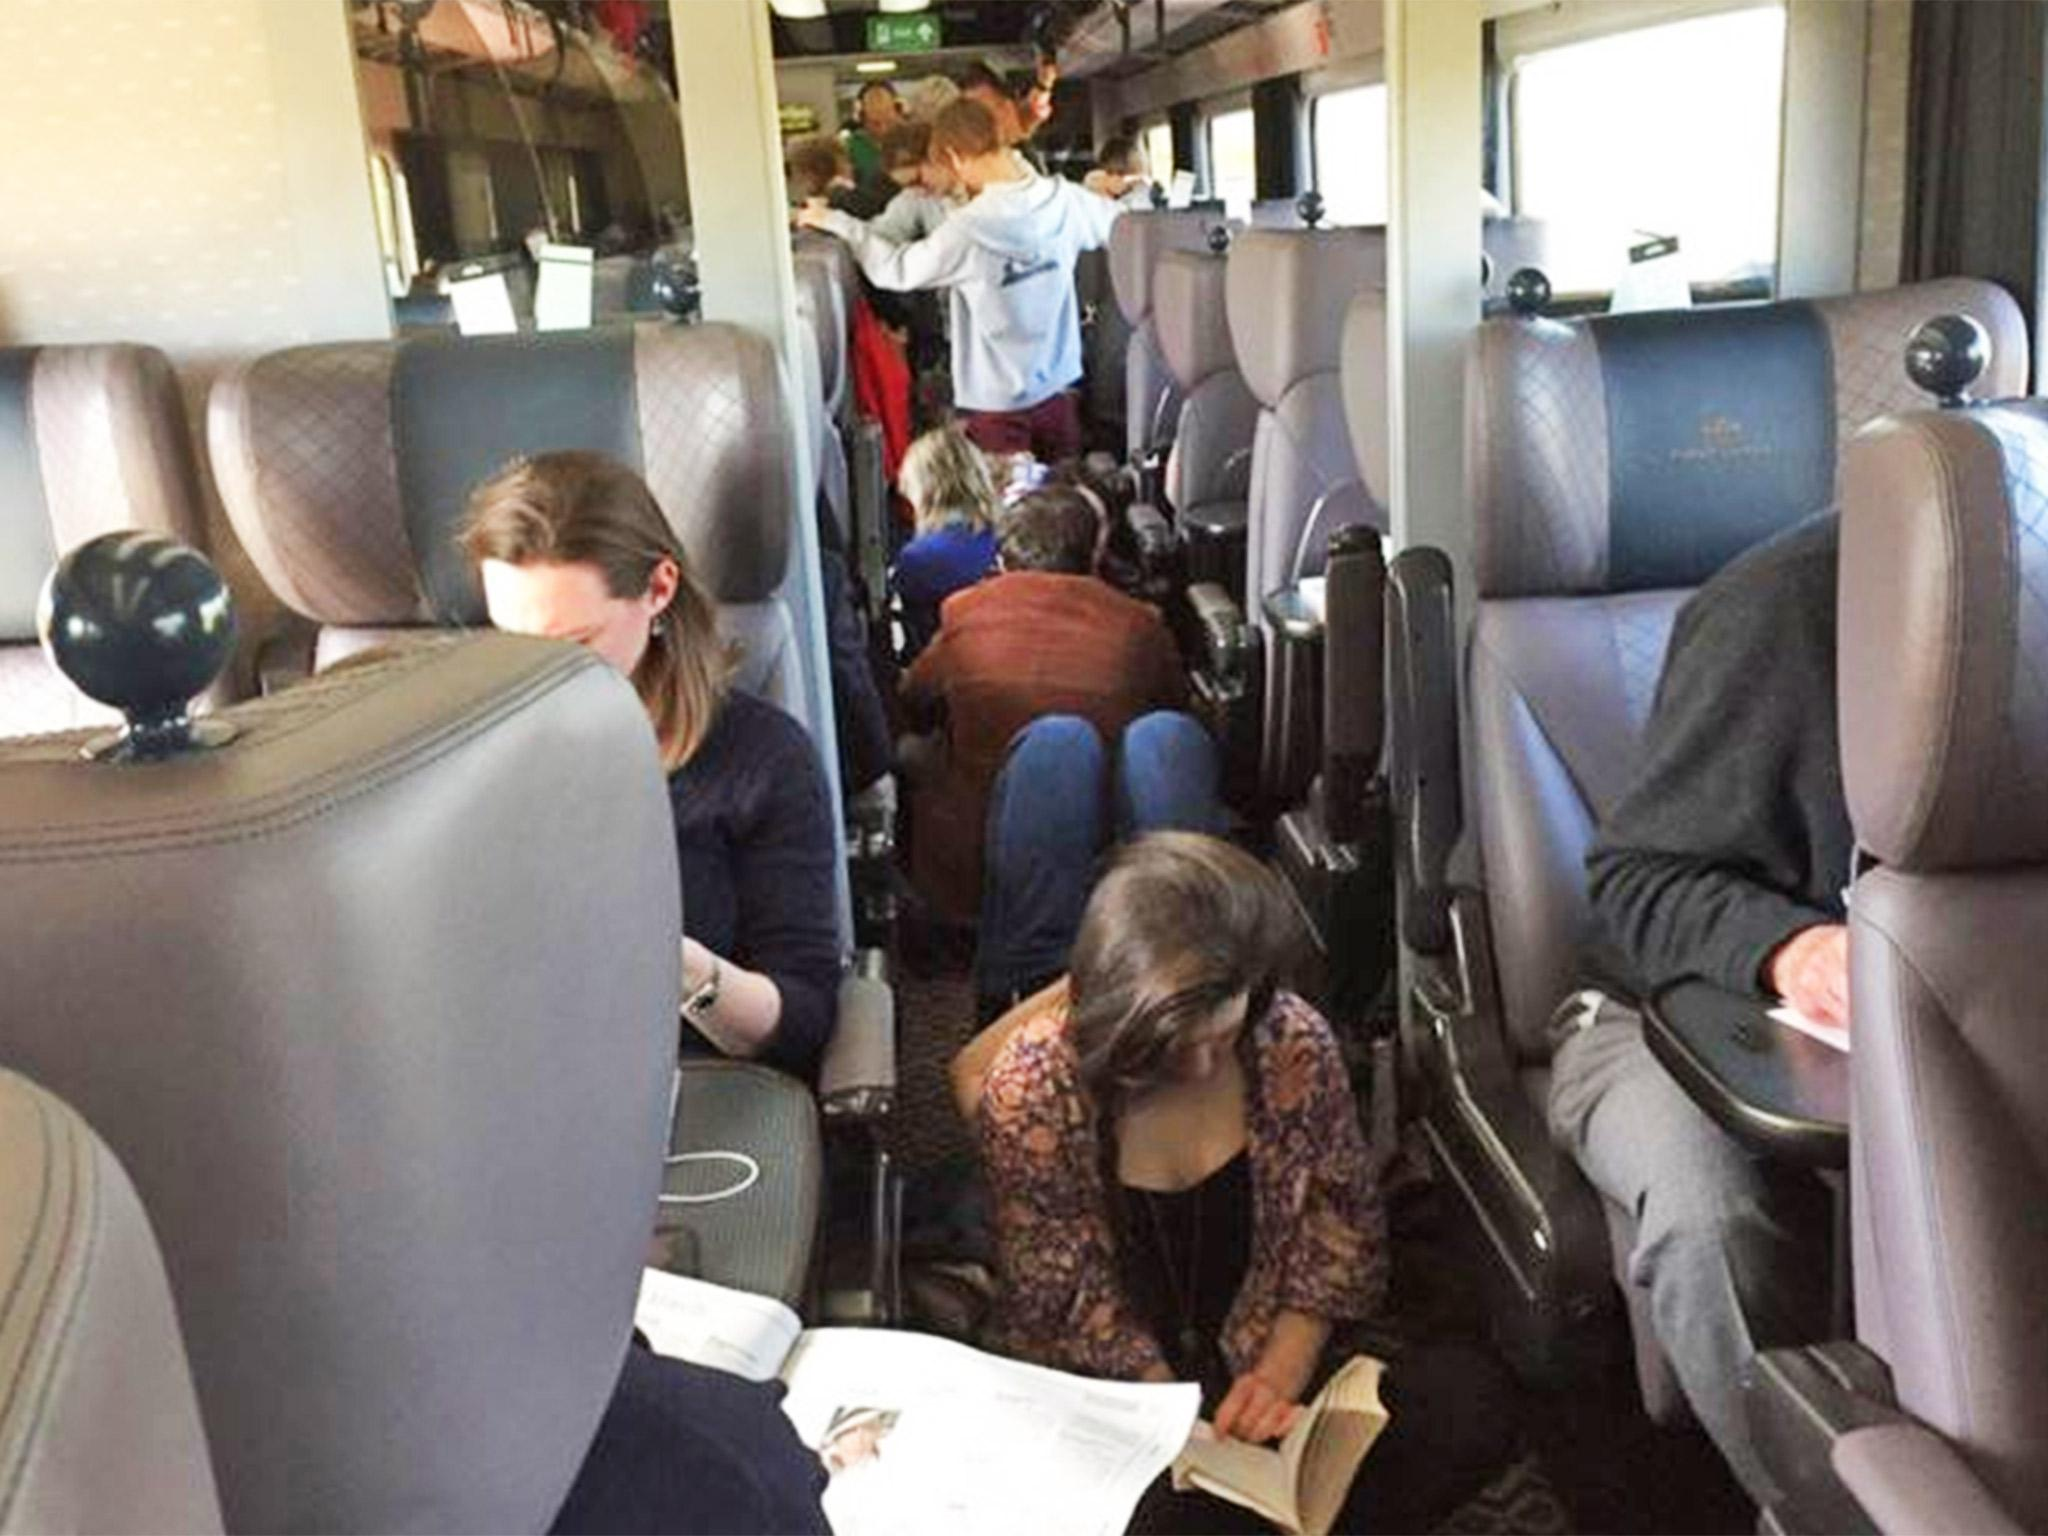 Train from hell Easter overcrowding on Great Western Railway s